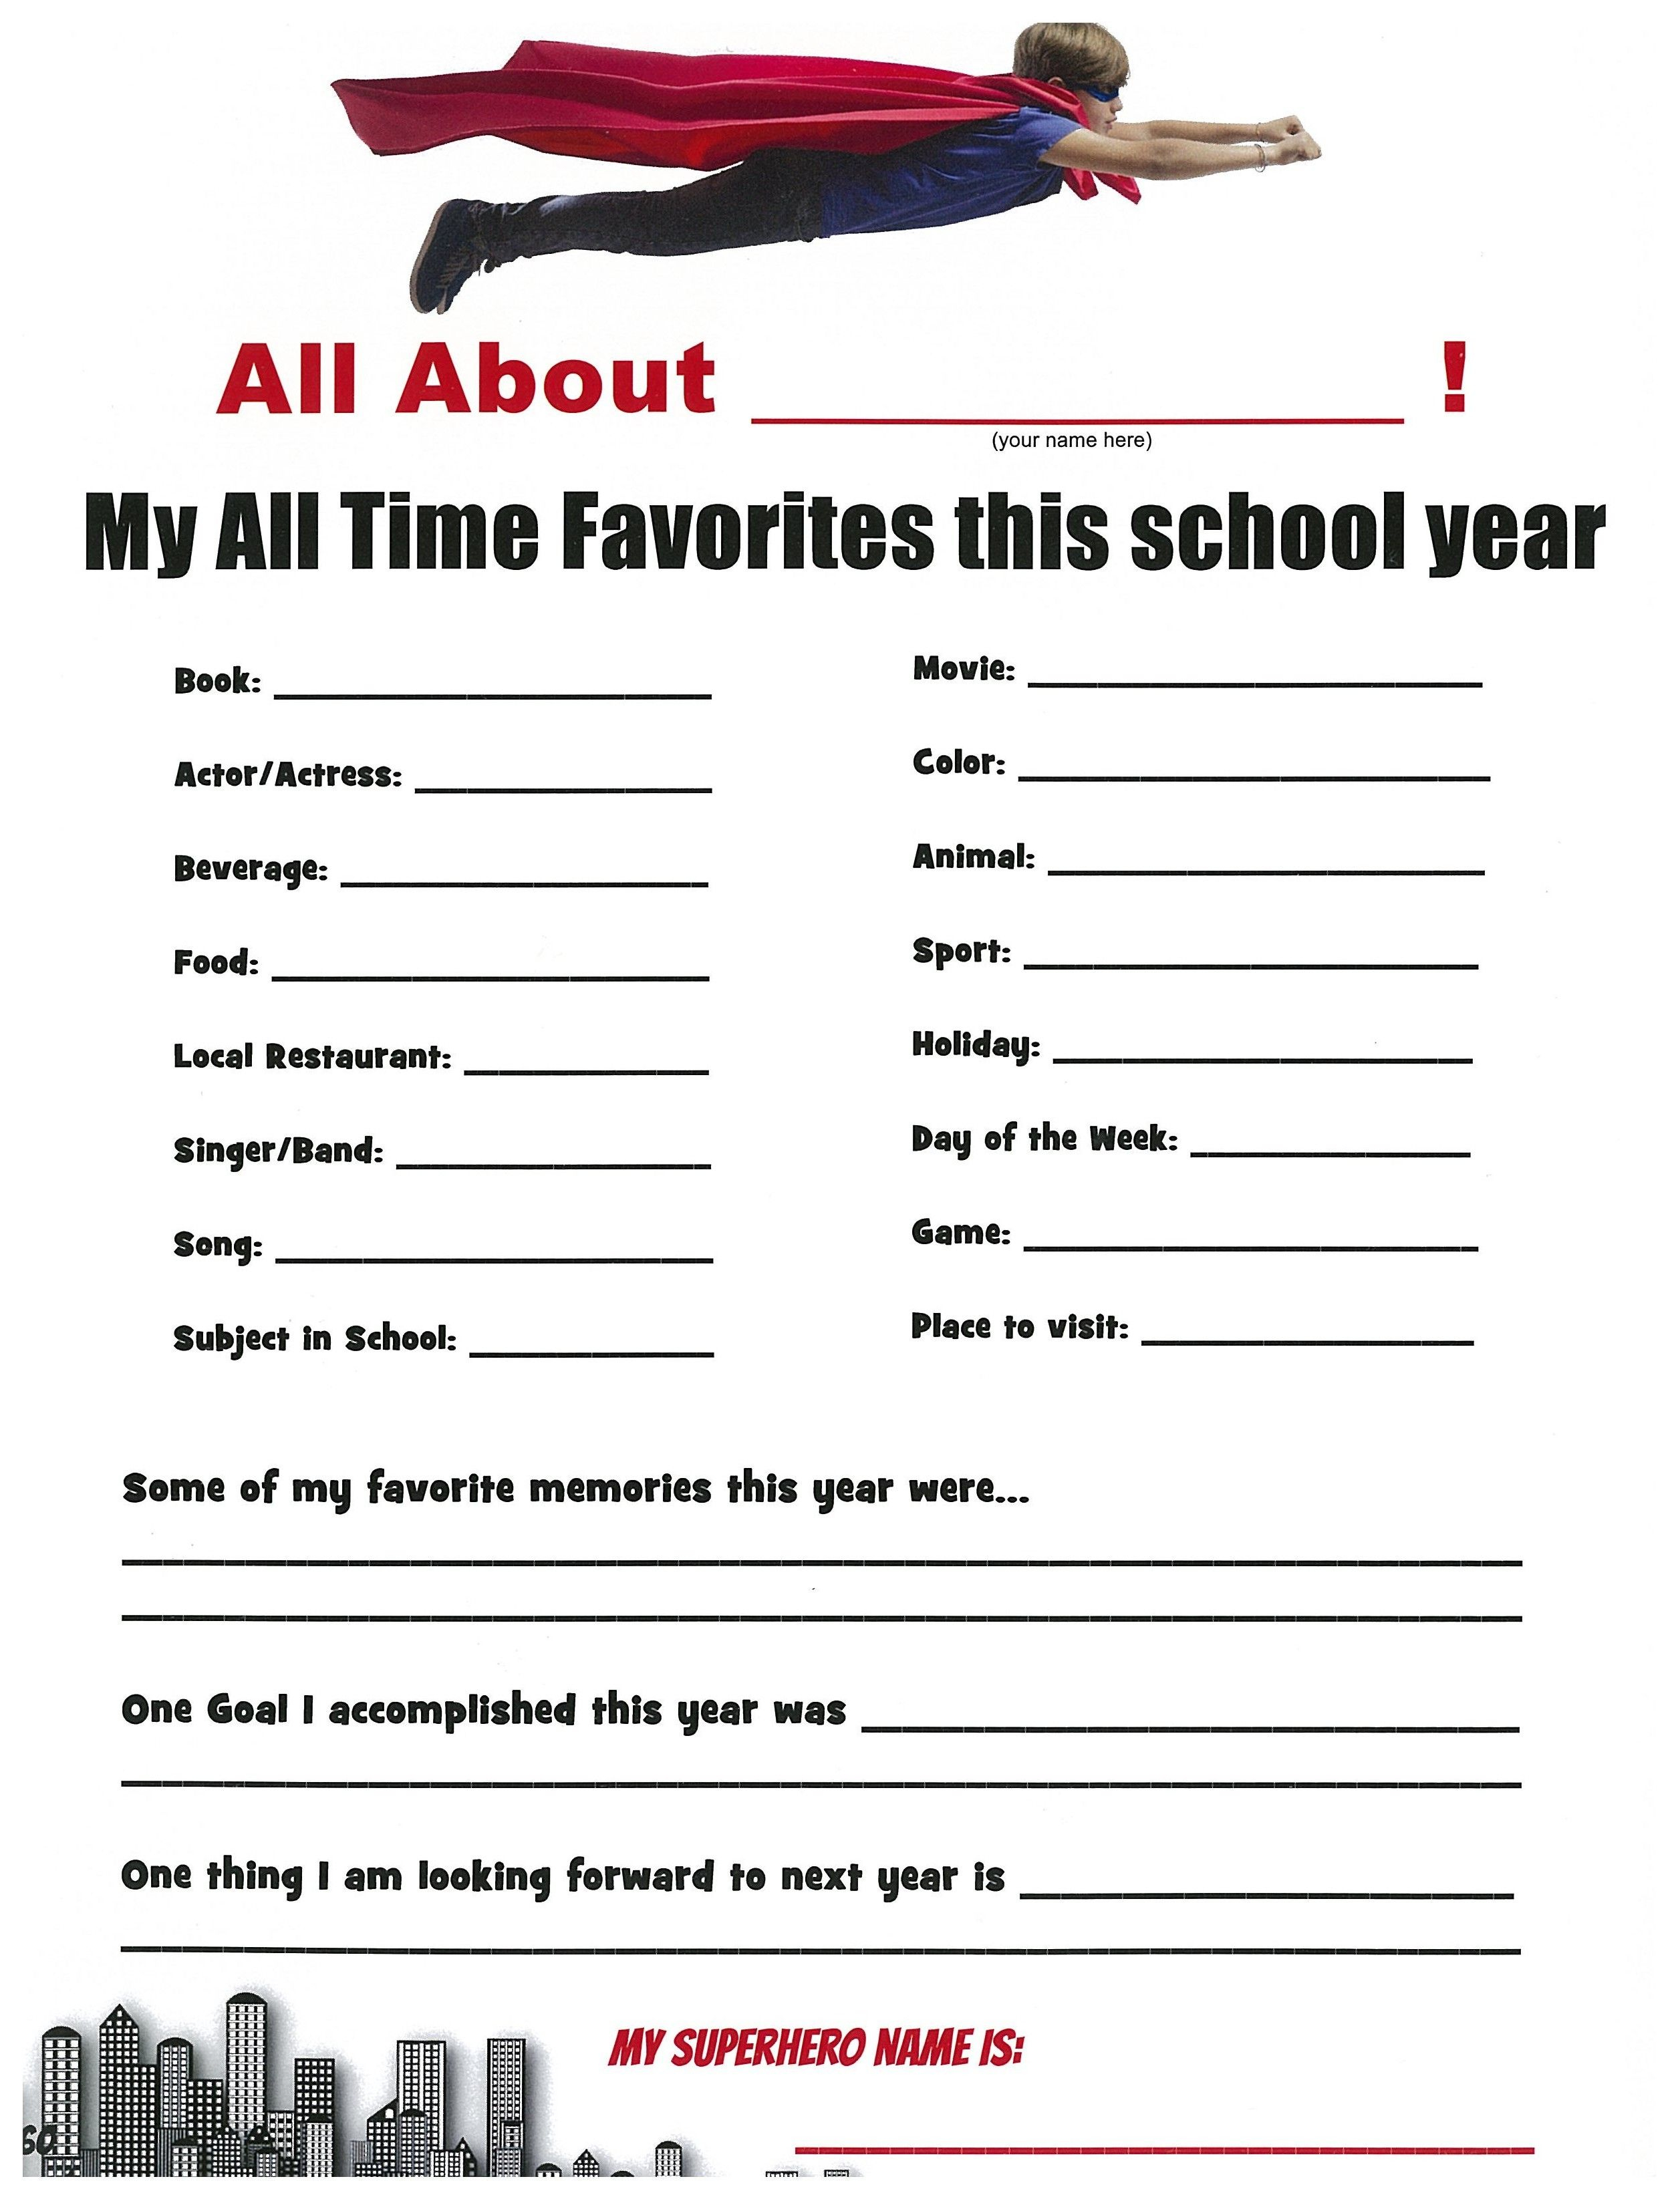 A Cute Idea For A Superhero Themed School Yearbook Page